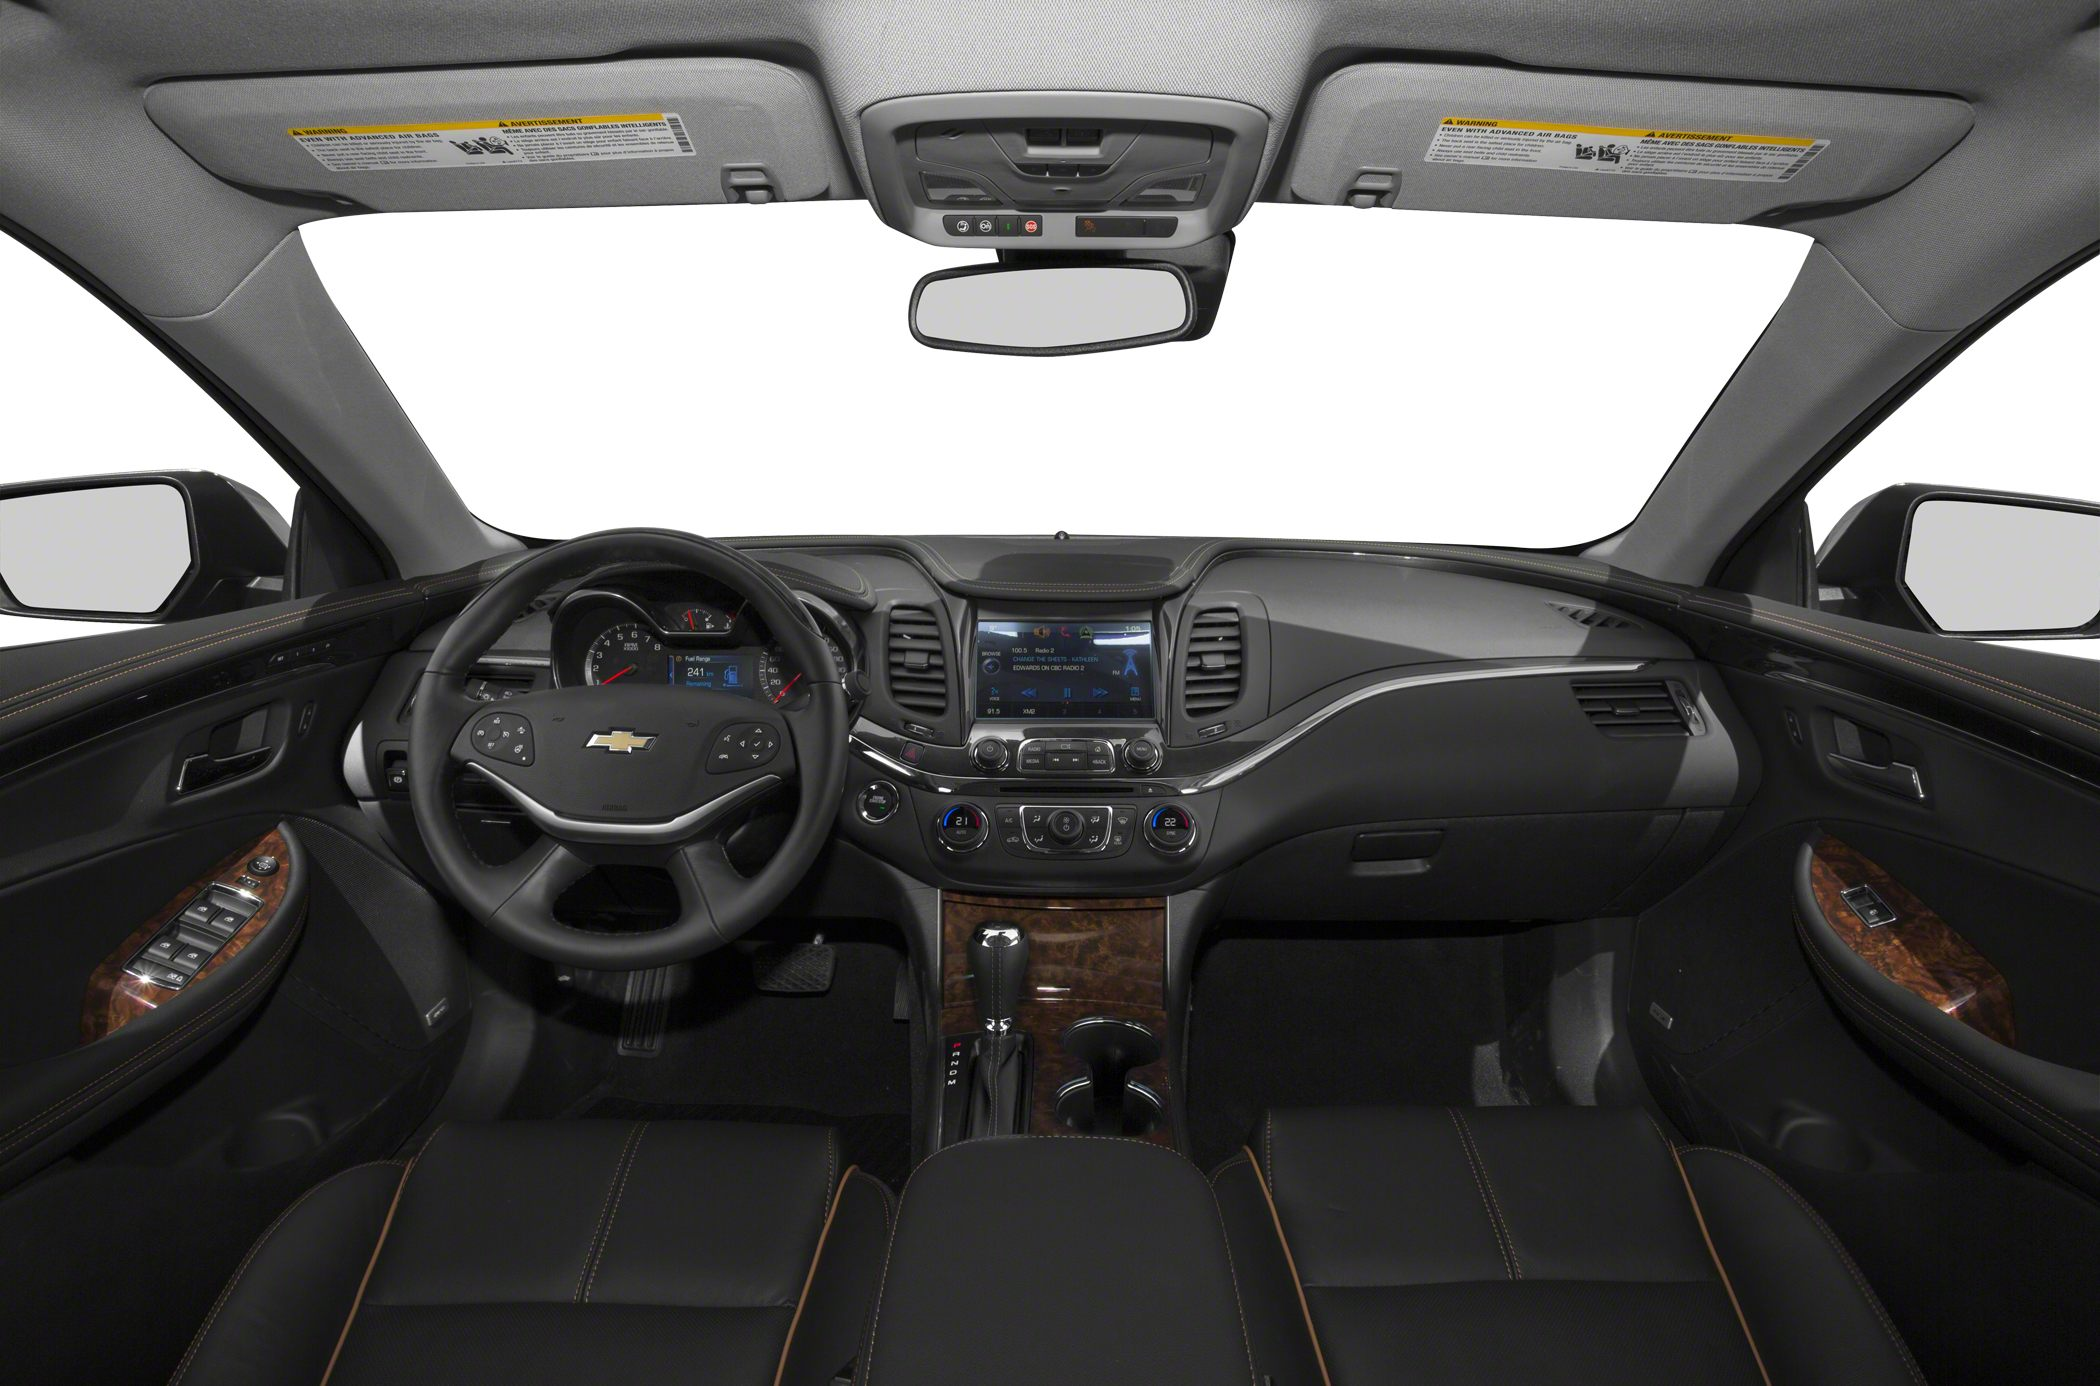 Impala 2015 Interior Images Galleries With A Bite